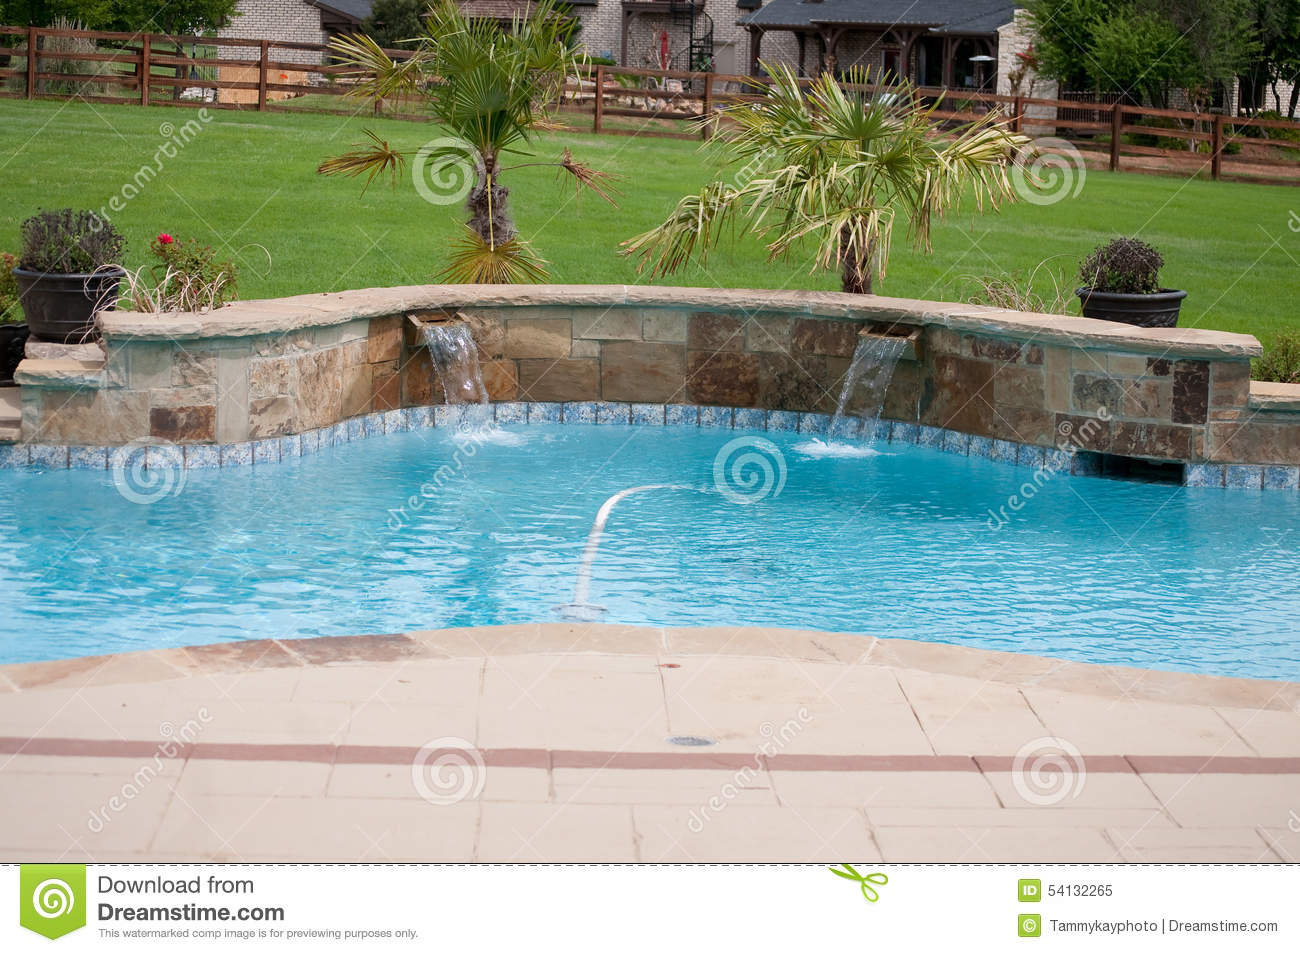 Residential beautiful swimming pool stock photo image Swimming pool beautiful